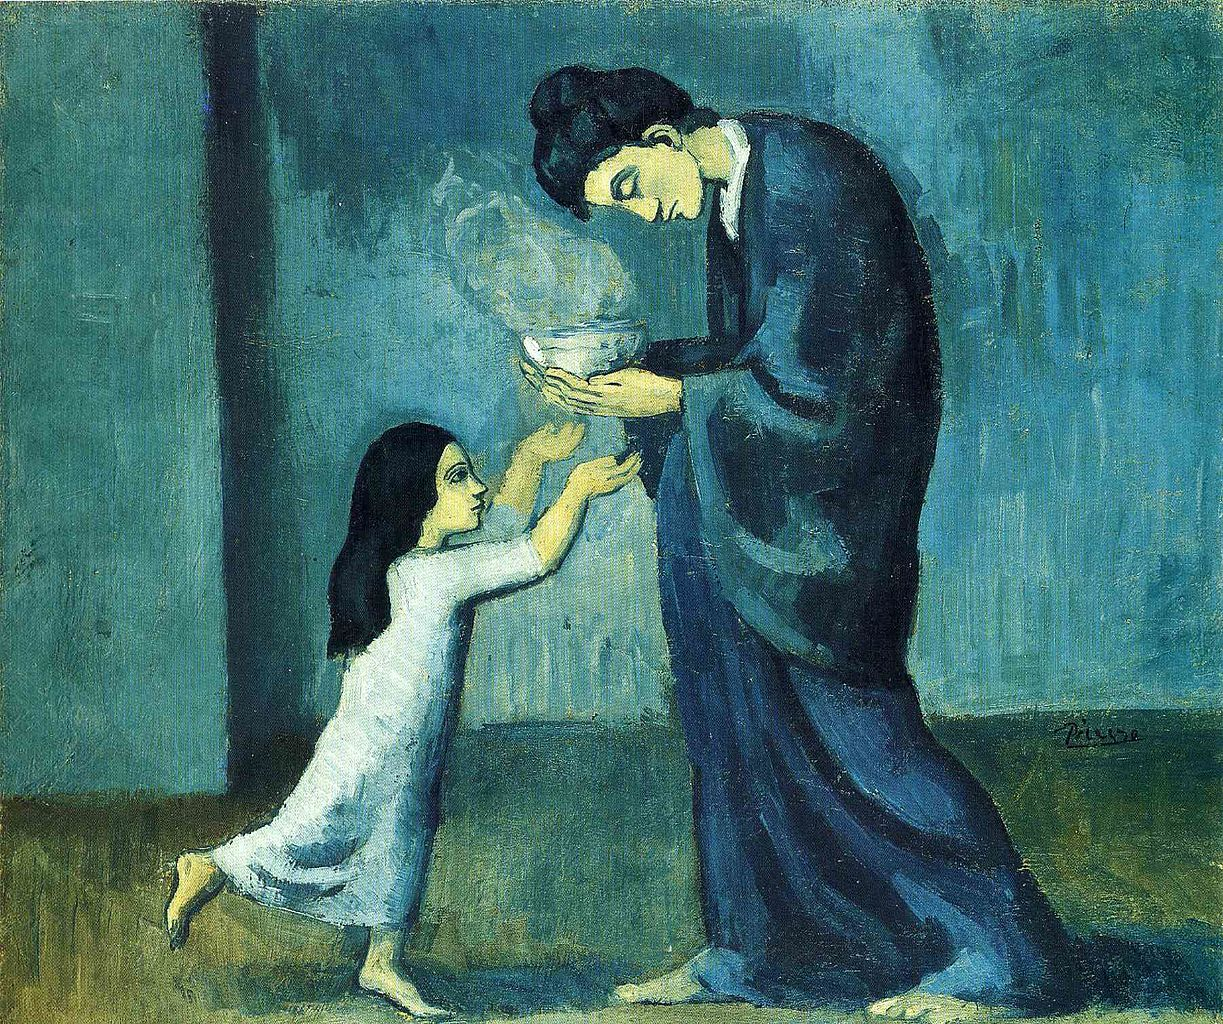 file pablo picasso 1902 03 la soupe the soup oil on canvas file pablo picasso 1902 03 la soupe the soup oil on canvas 38 5 x 46 0 cm art gallery of ontario toronto jpg